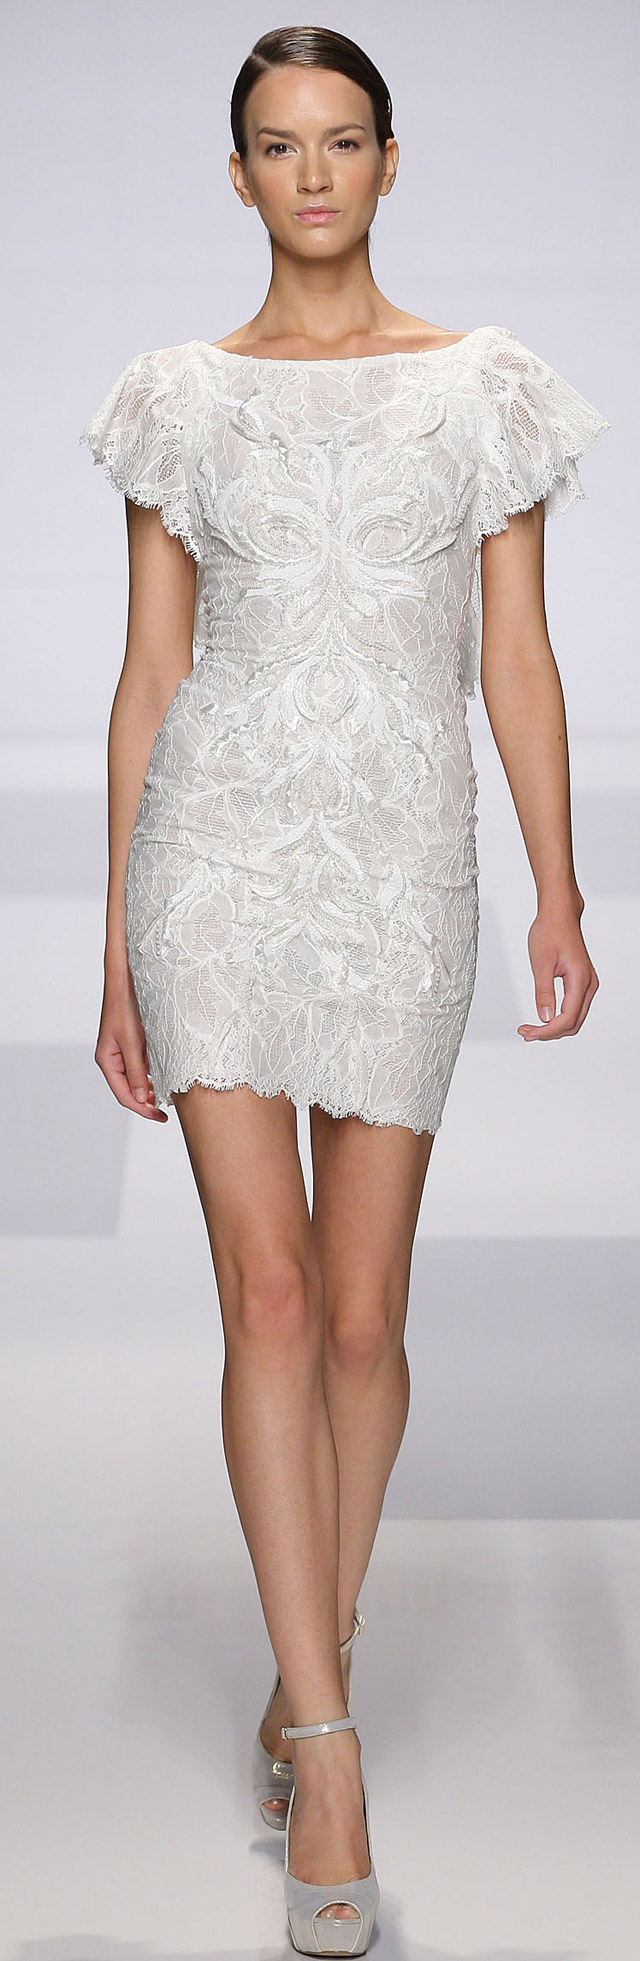 TONY WARD  COUTURE  FALL-WINTER 2013-2014 (9)